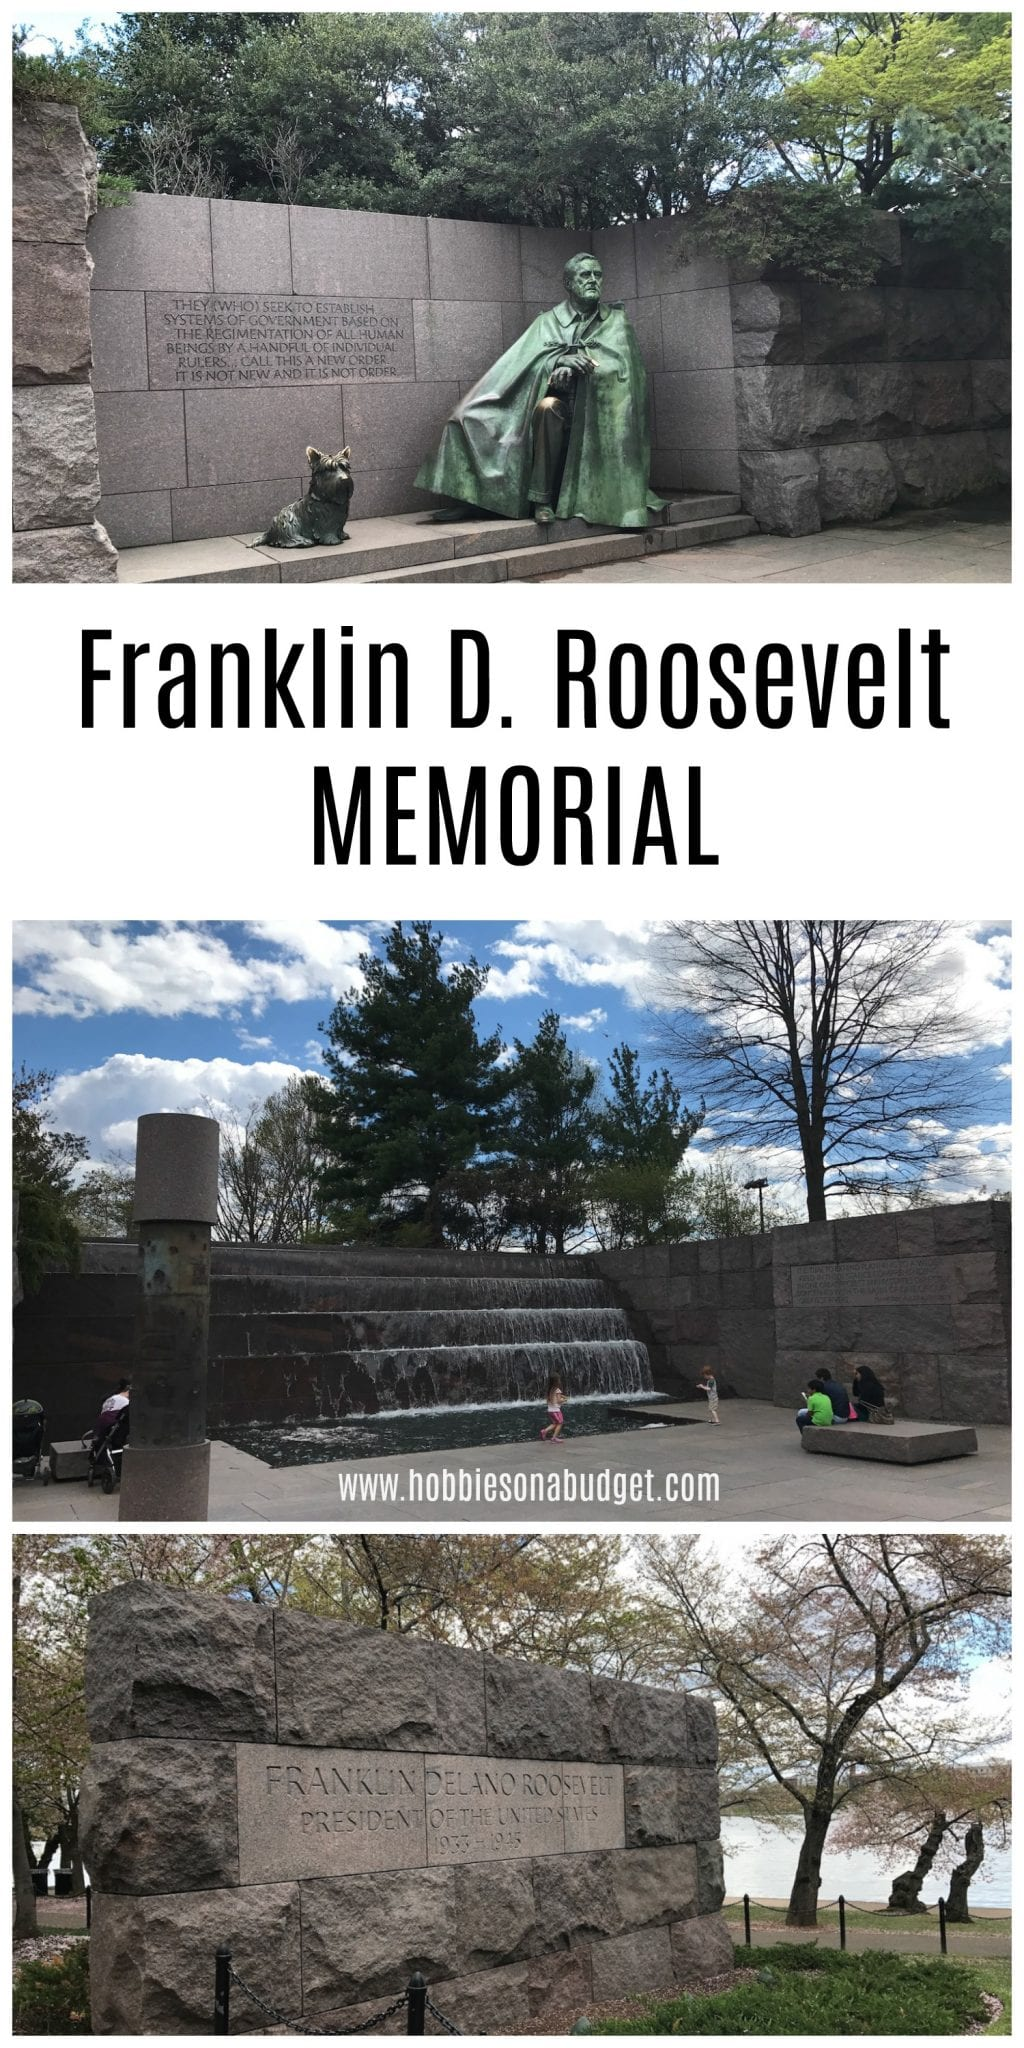 Heading to WashingtonDC?  Here are a few tips on what to expect on a visit to the Franklin D Roosevelt Memorial in Washington DC.   Located on the shores of the Tidal Basin across from the Jefferson Memorial, the FDR Memorial is a beautiful look at the presidency of our 32nd President.